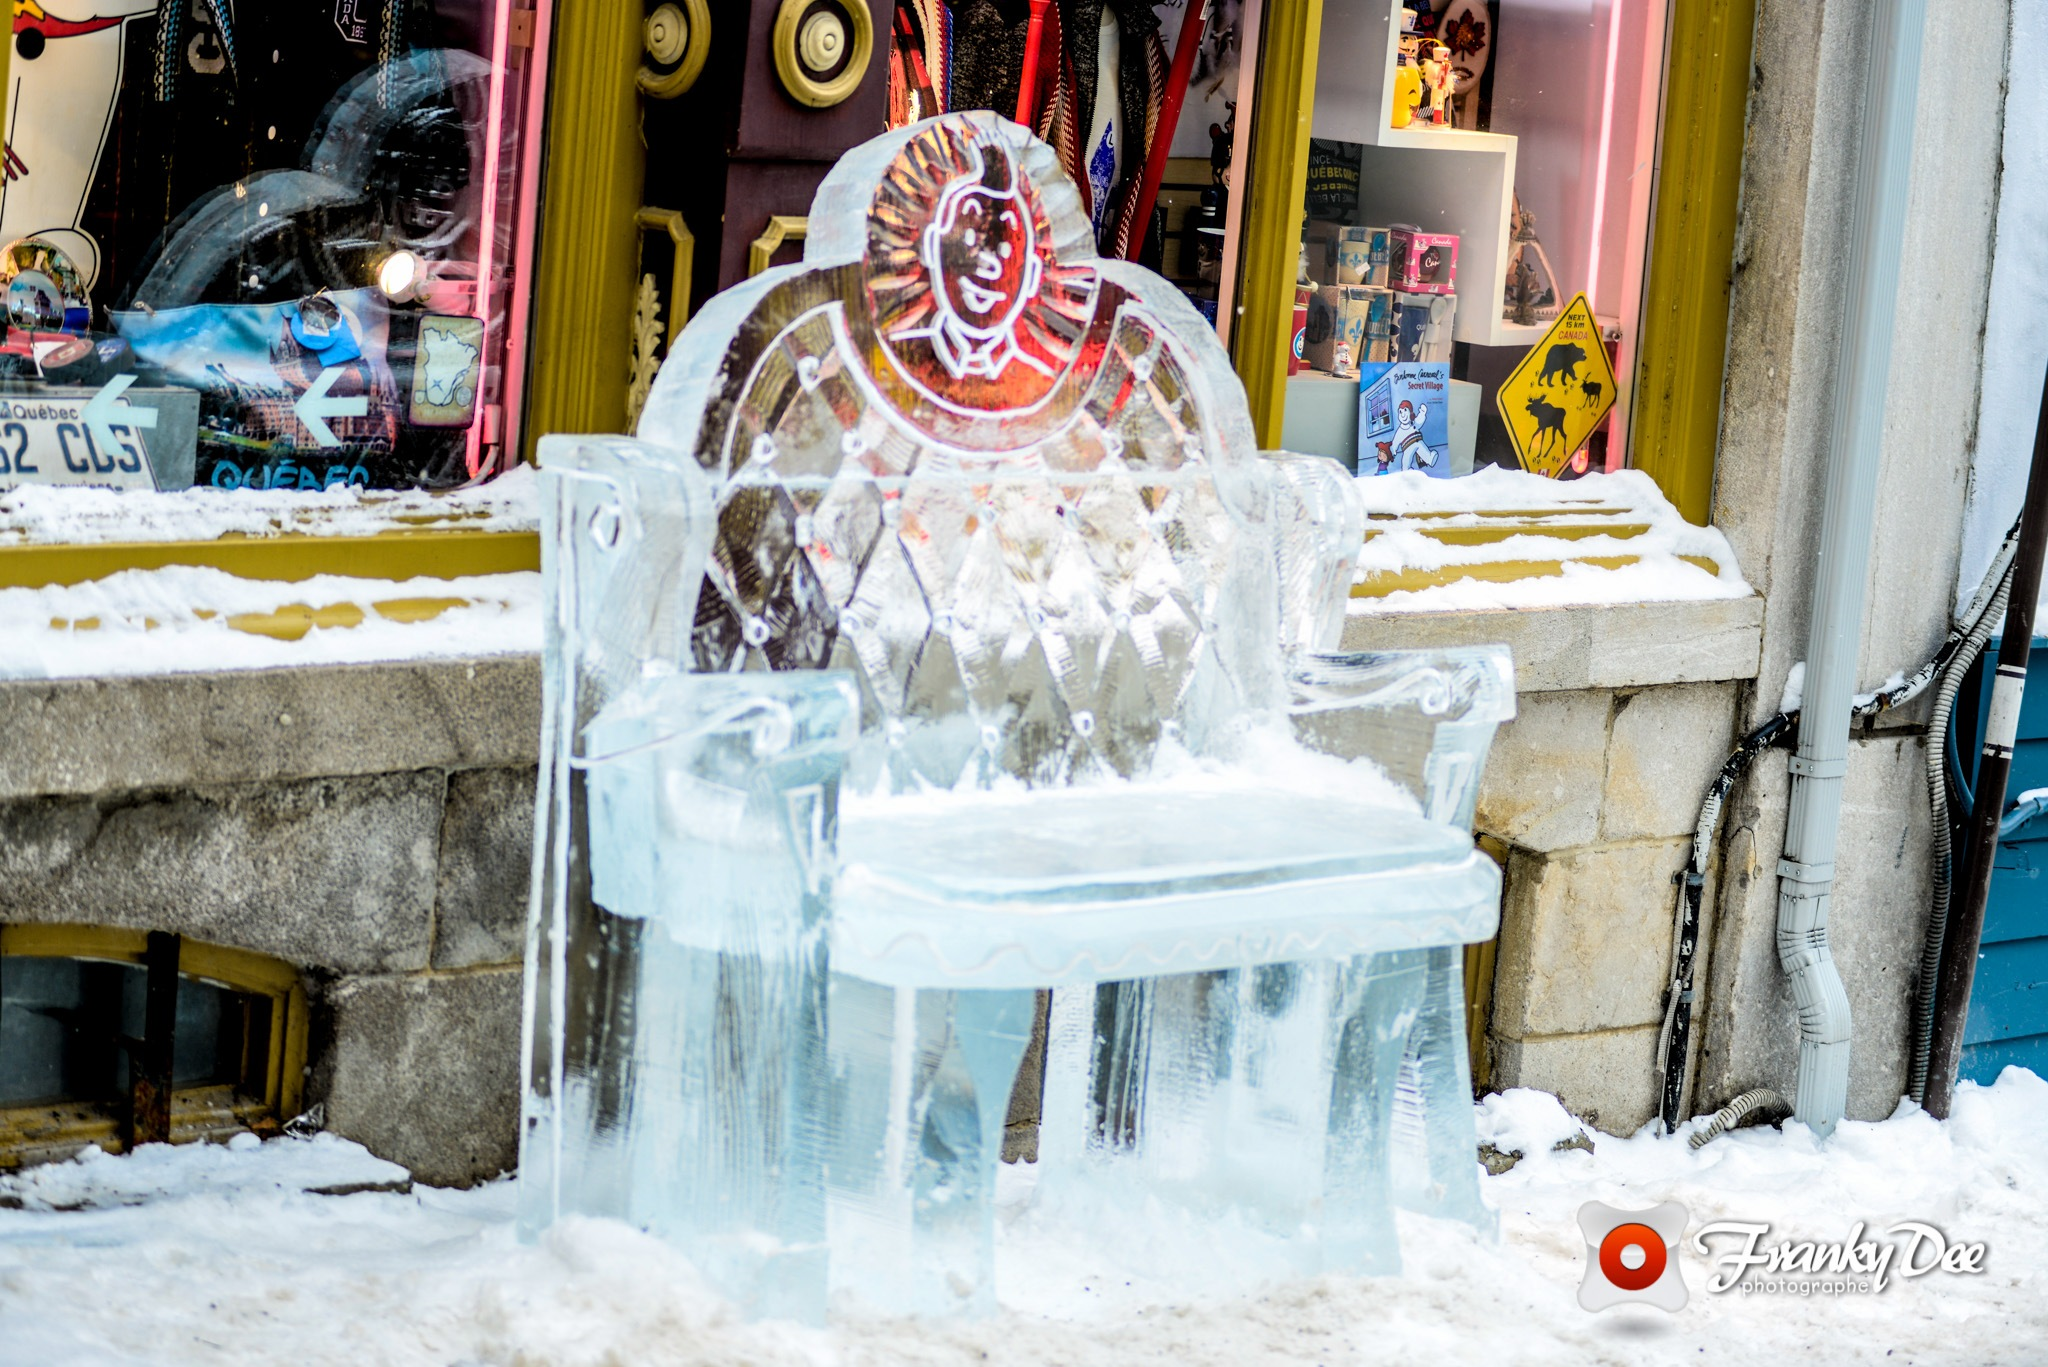 ICE WORK - Nice place to sitdown by ..:: FRANKYDEE ::..